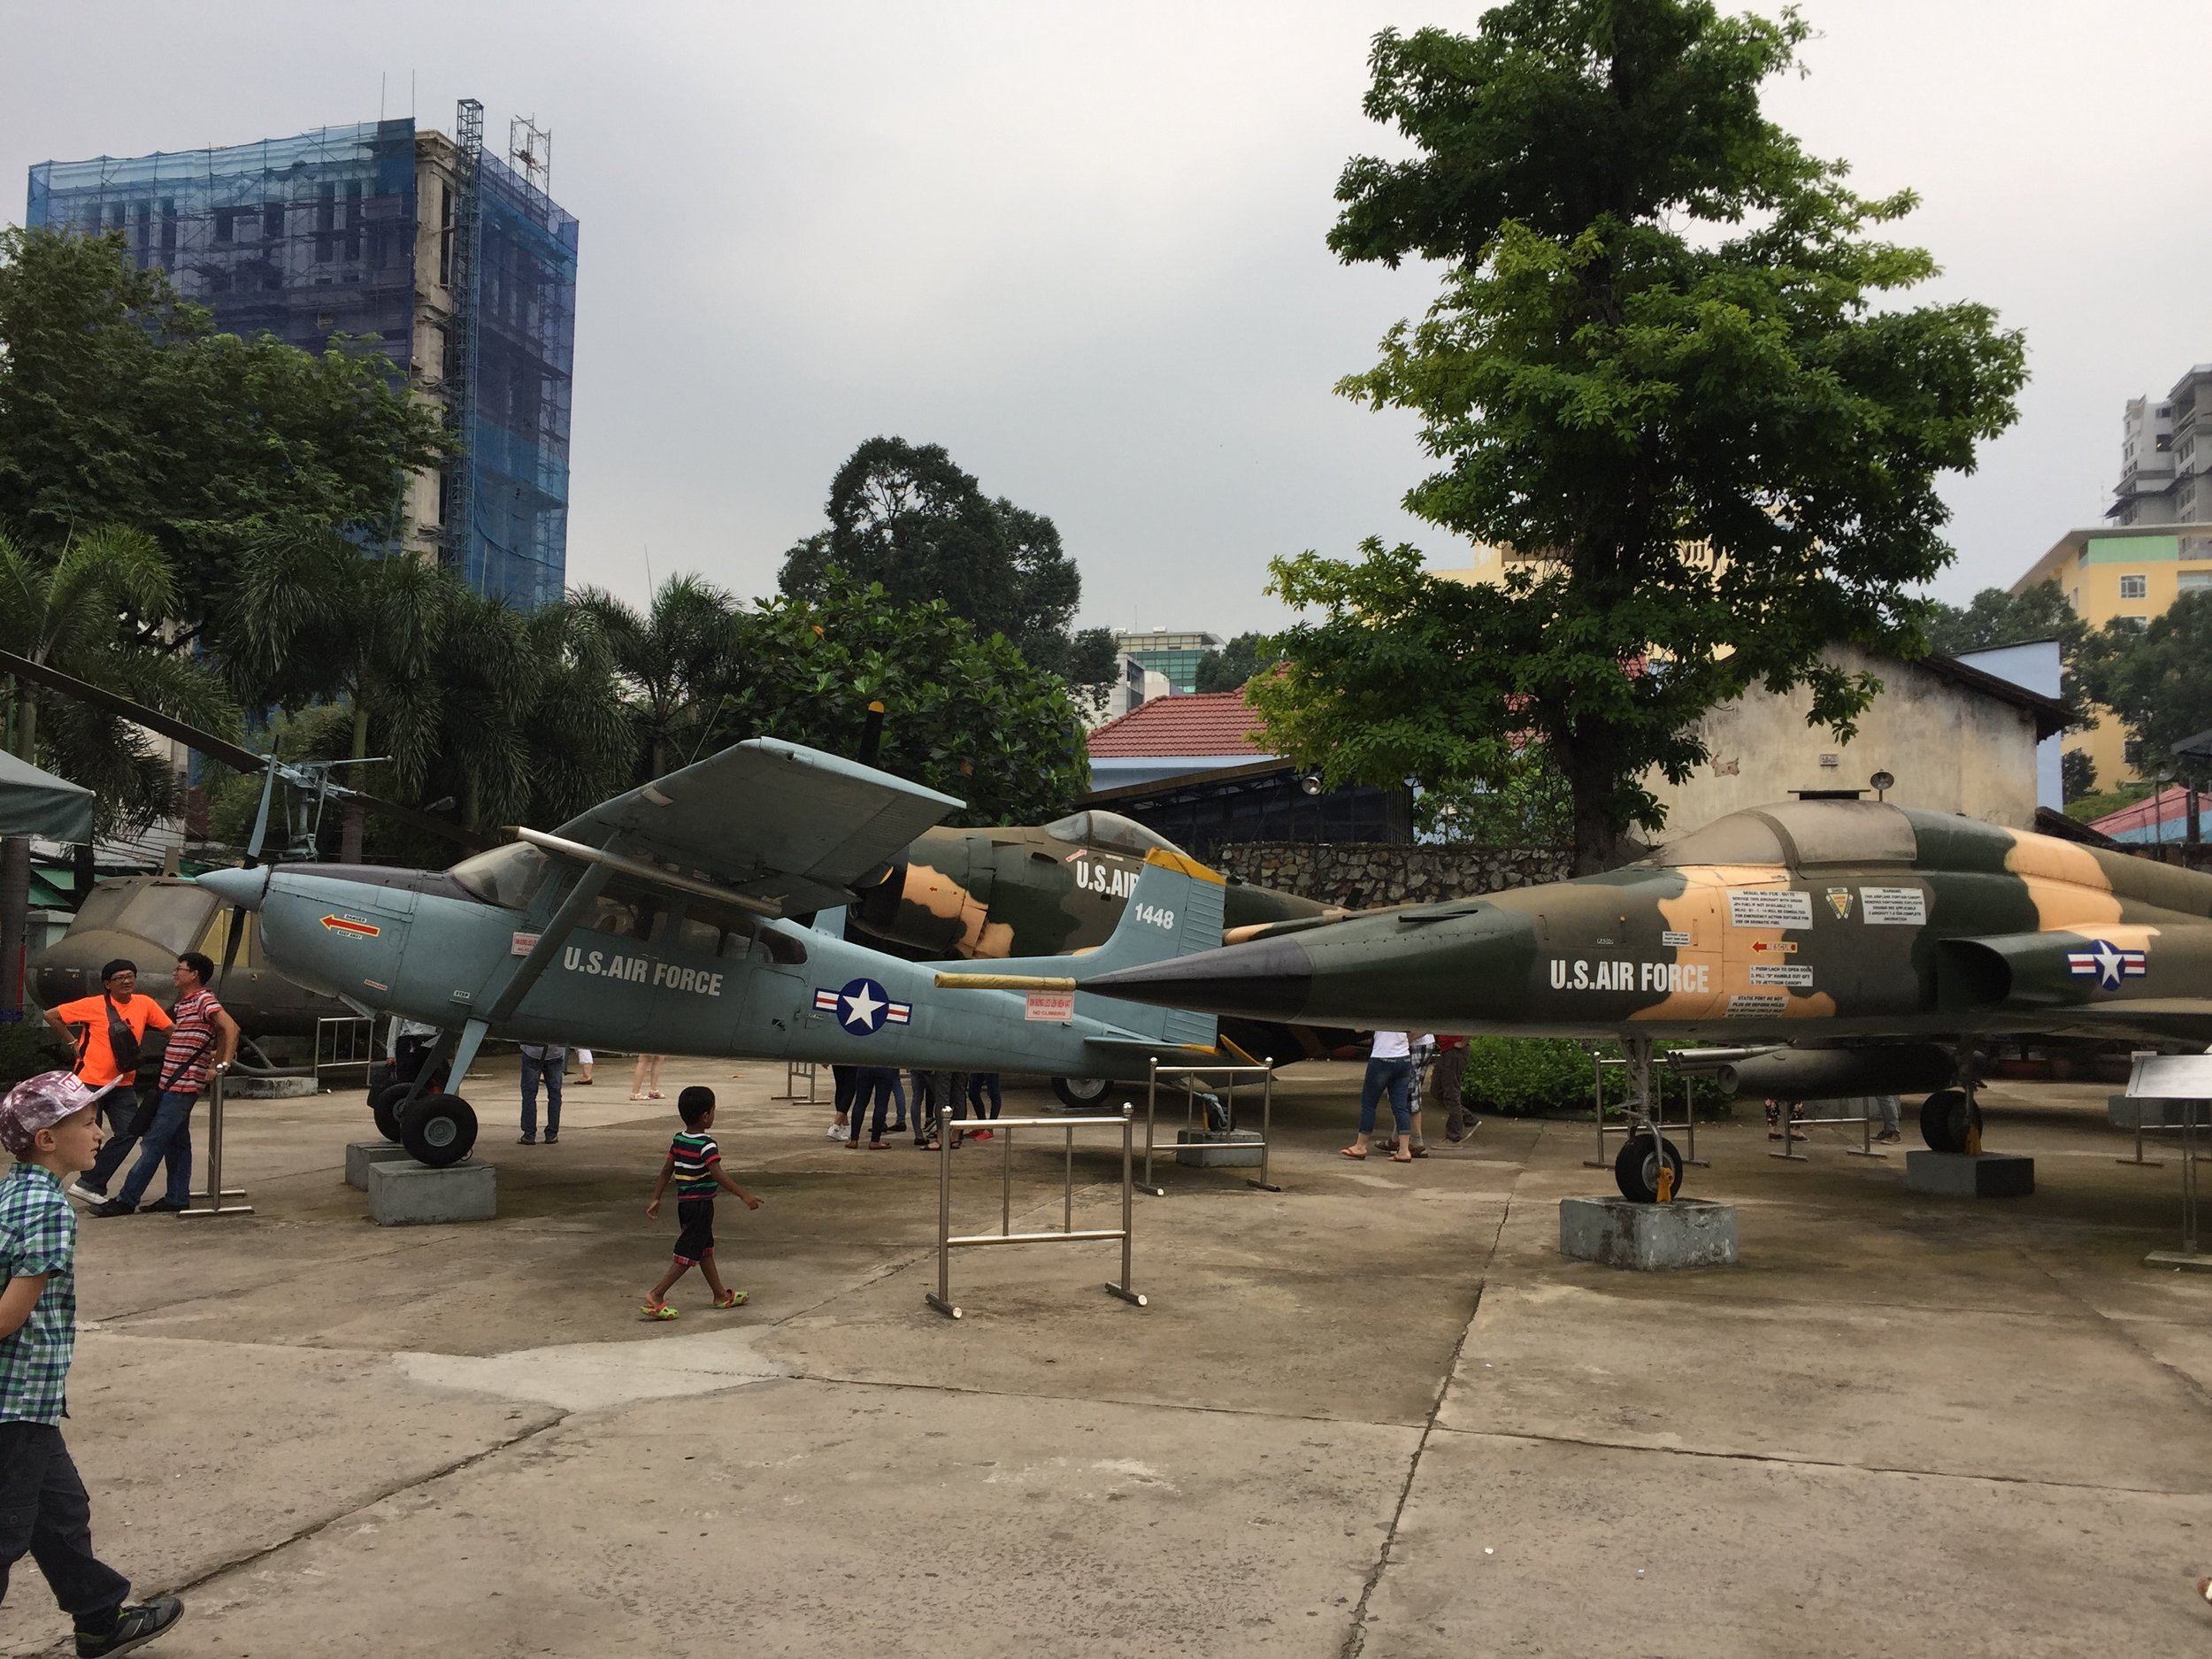 Tourists pose with aircraft and tanks outside of the museum before entering and seeing what they were used to do.